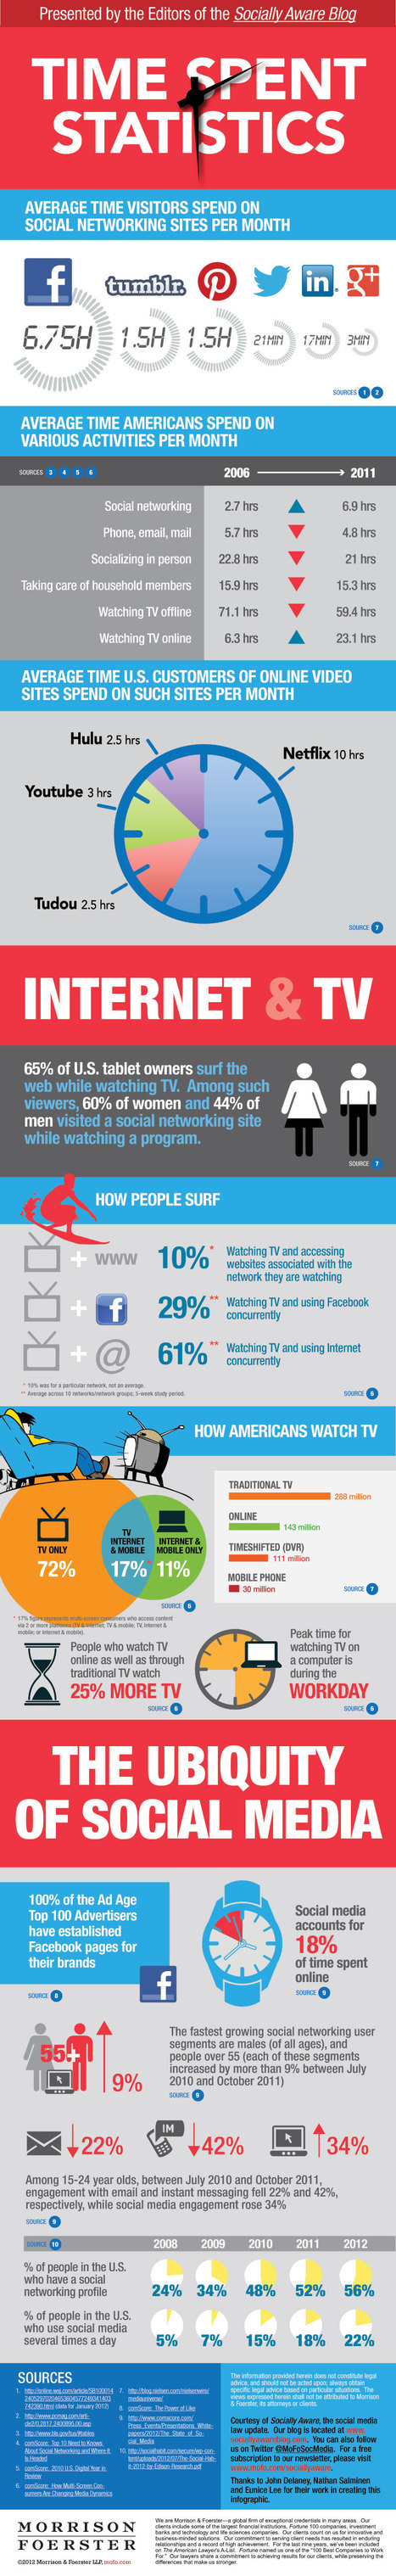 The Growing Impact of Social Media #infographic | Máster profesorado y TICS | Scoop.it